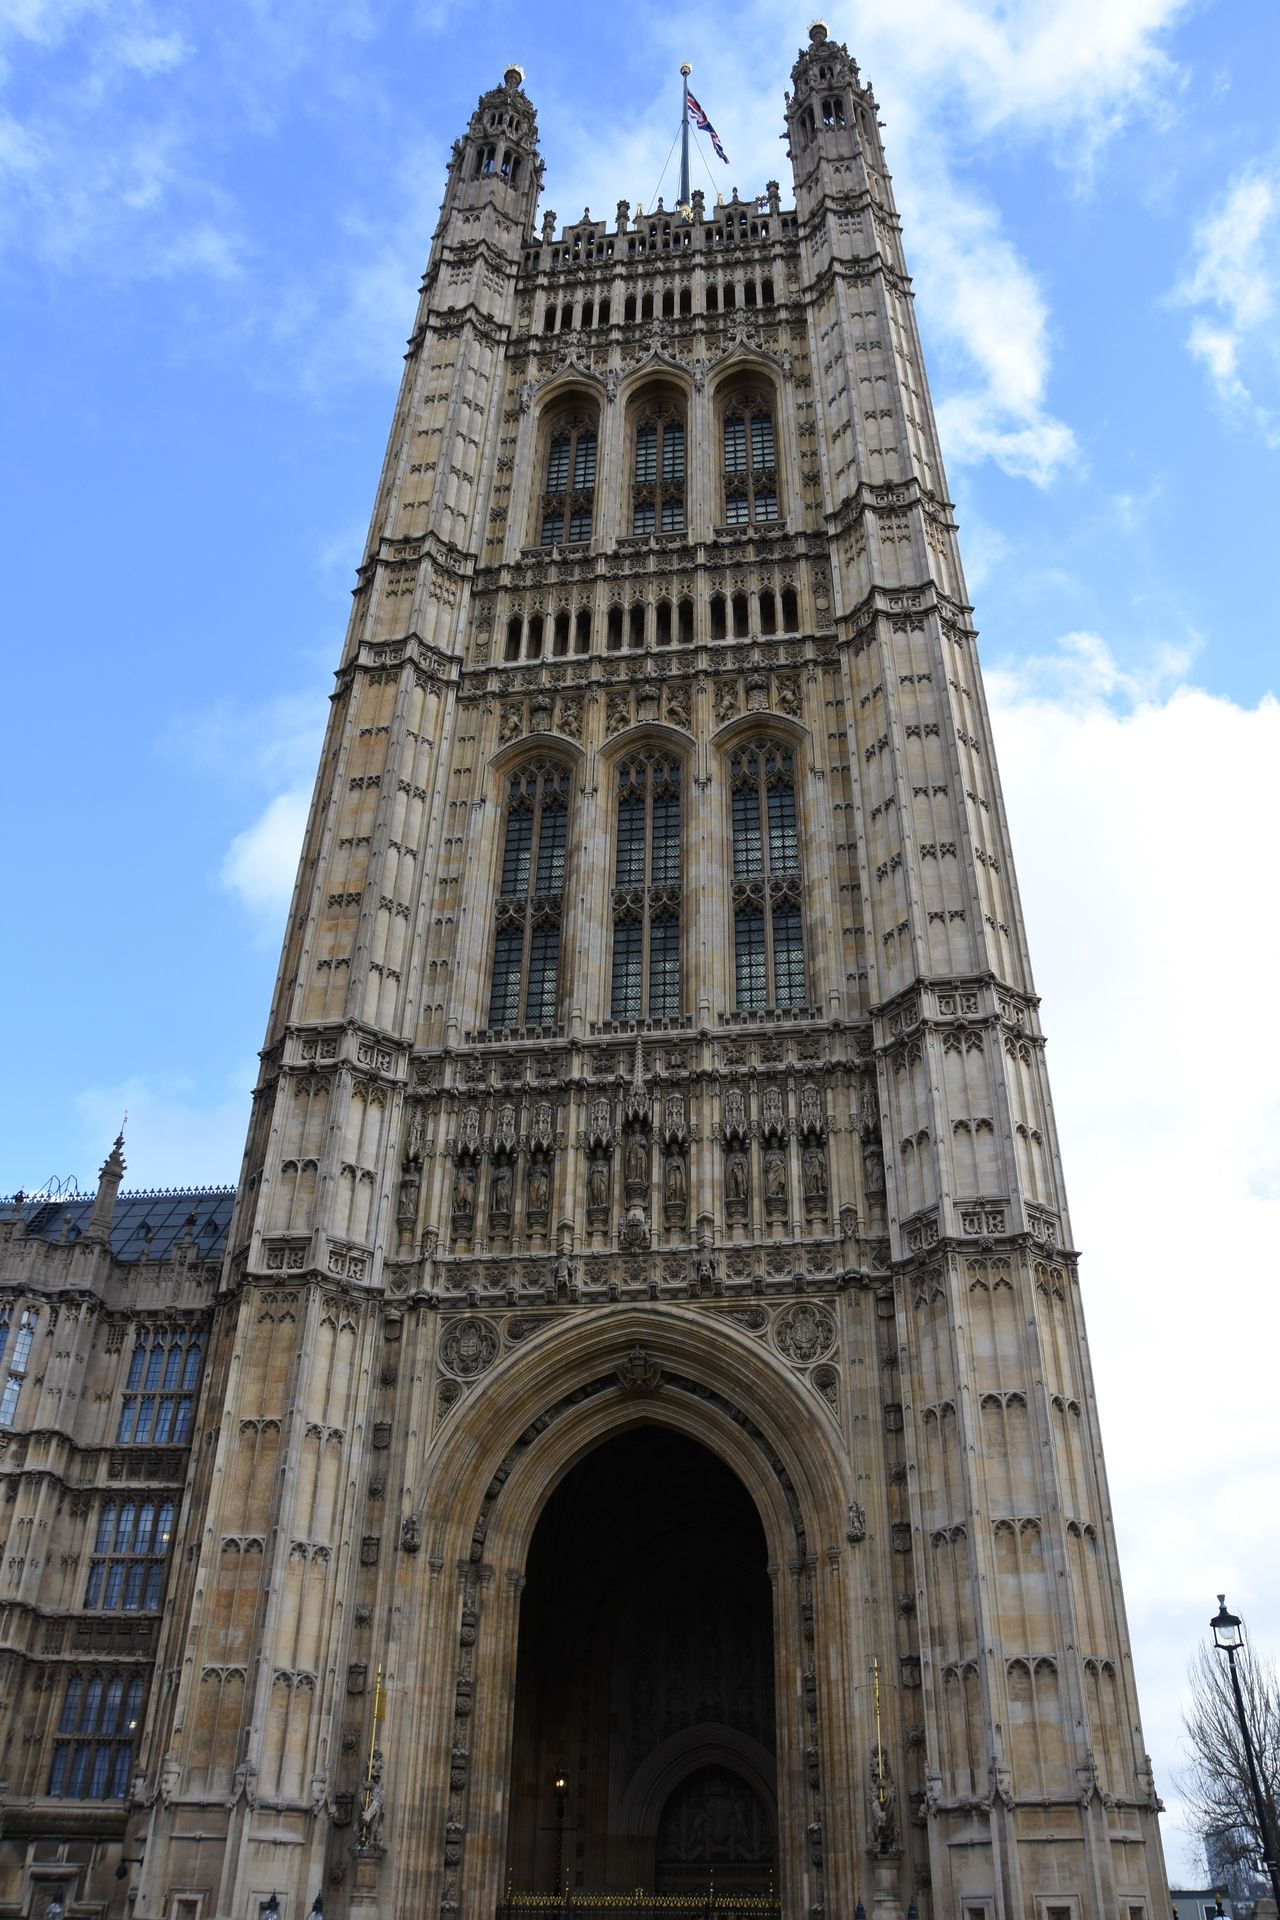 House of Parliament Architecture Building Exterior Built Structure City Clock Clock Tower Day Gothic Style History LONDON❤ Low Angle View No People Outdoors Parliament Parliament Building Rose Window Sky Tower Travel Destinations Westminster